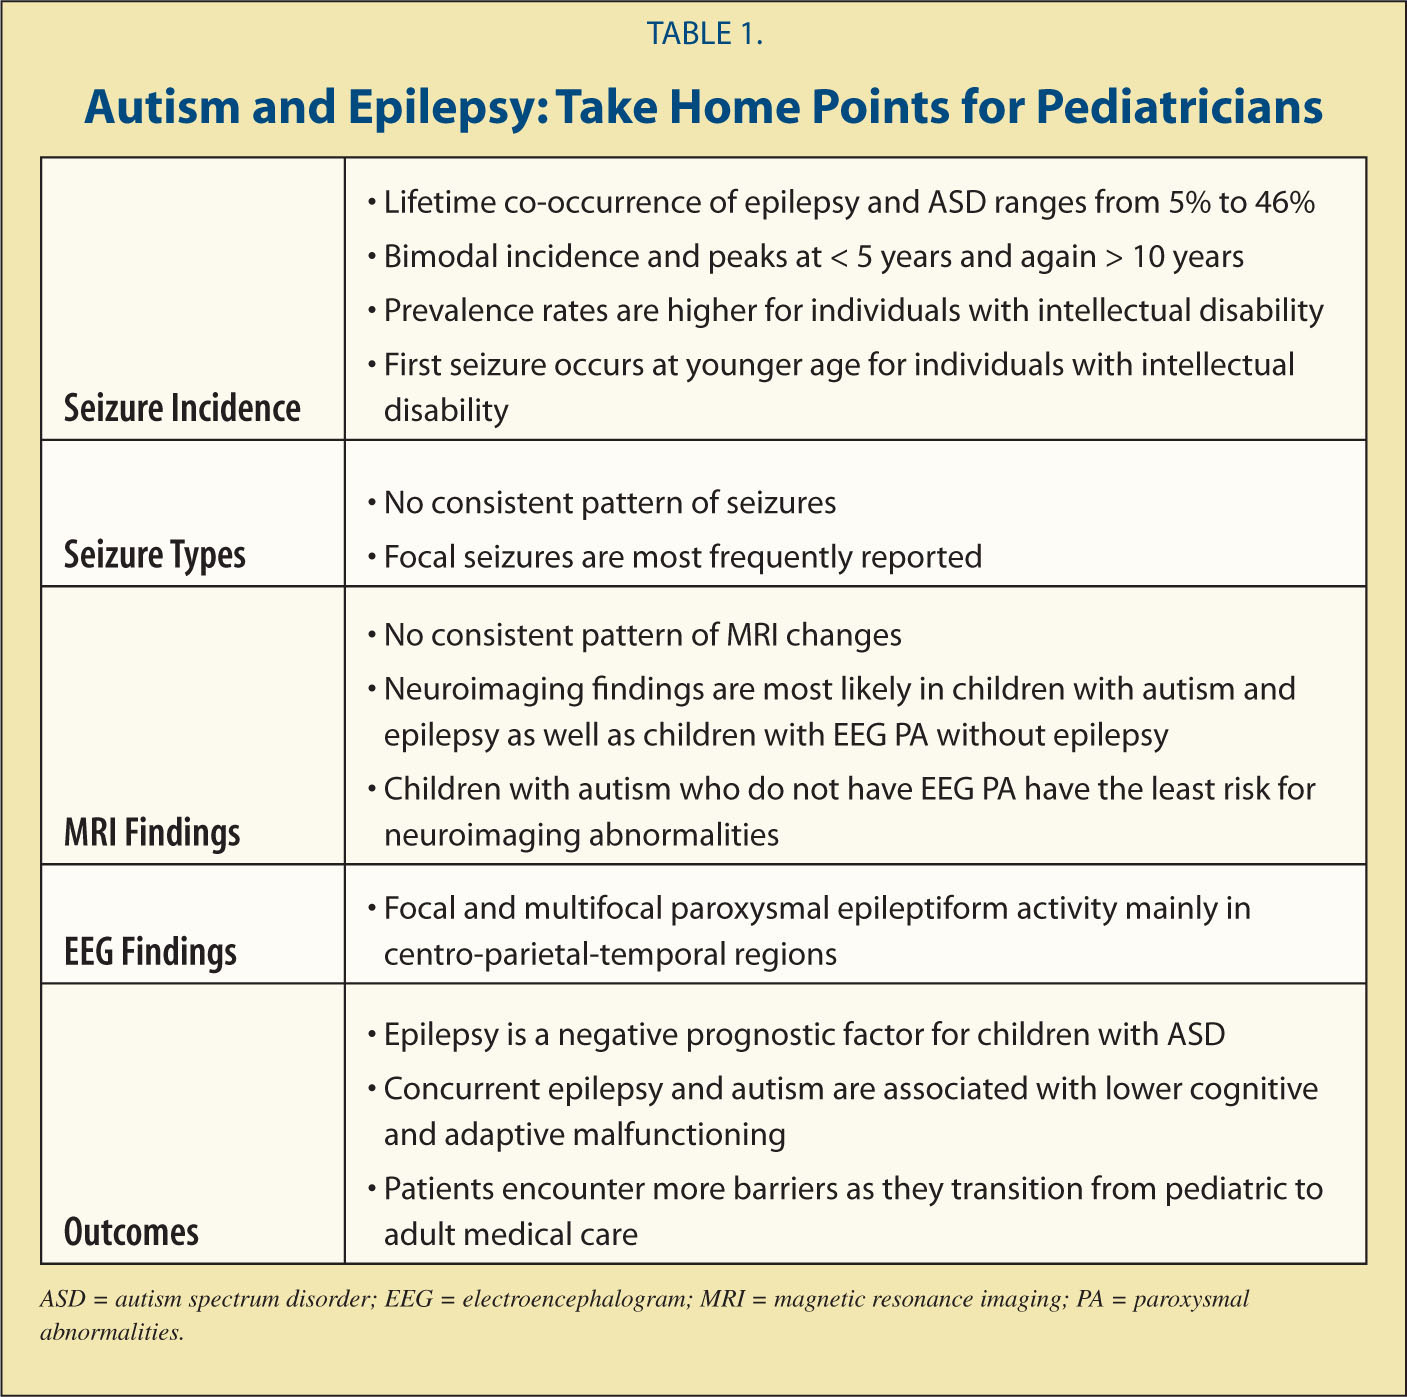 Autism and Epilepsy: Take Home Points for Pediatricians